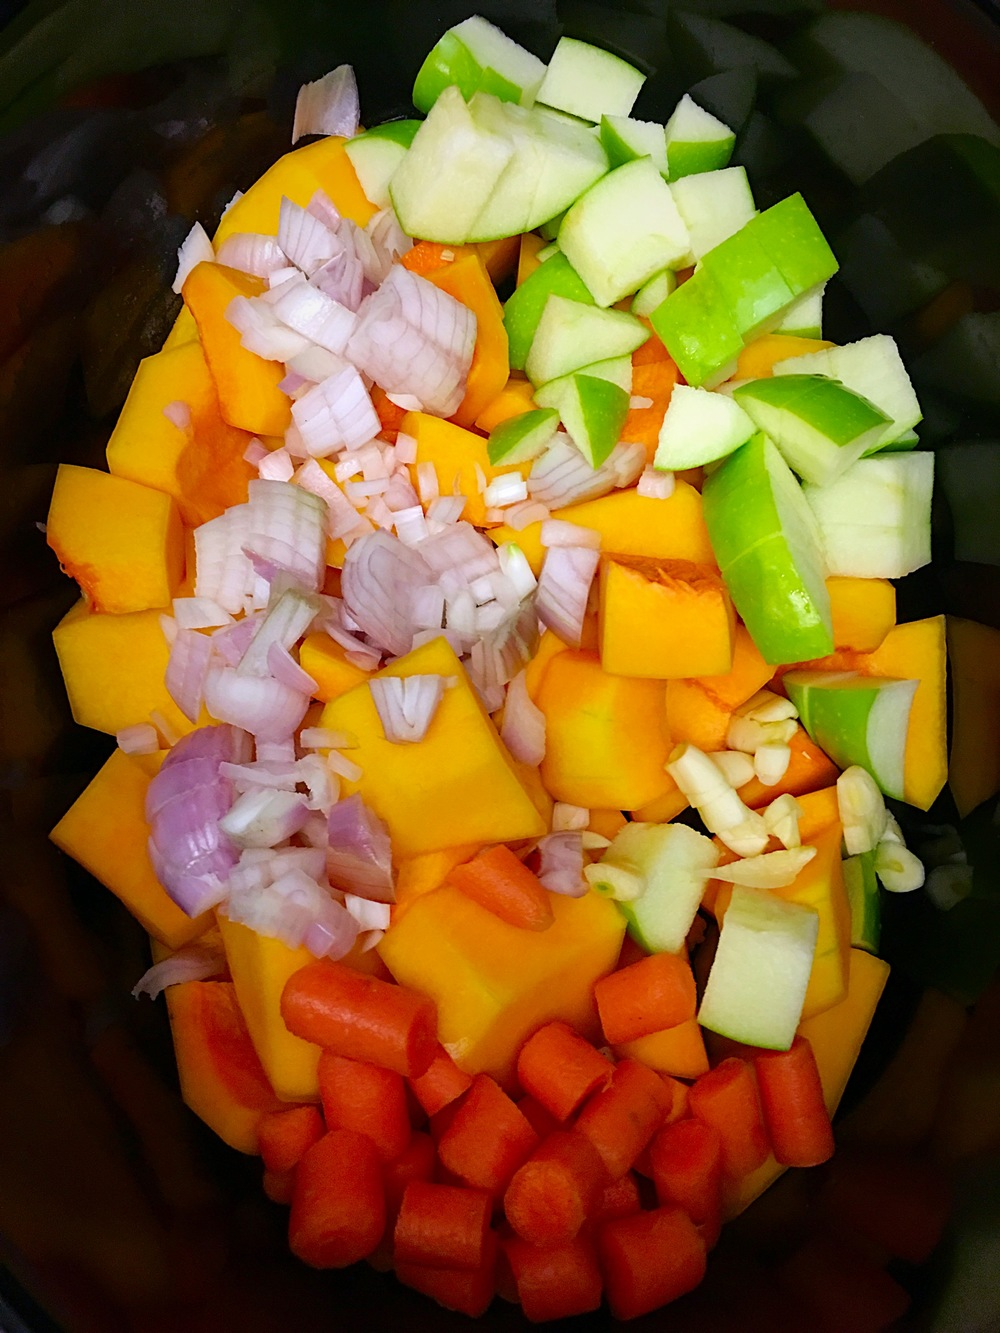 add your chopped veggies